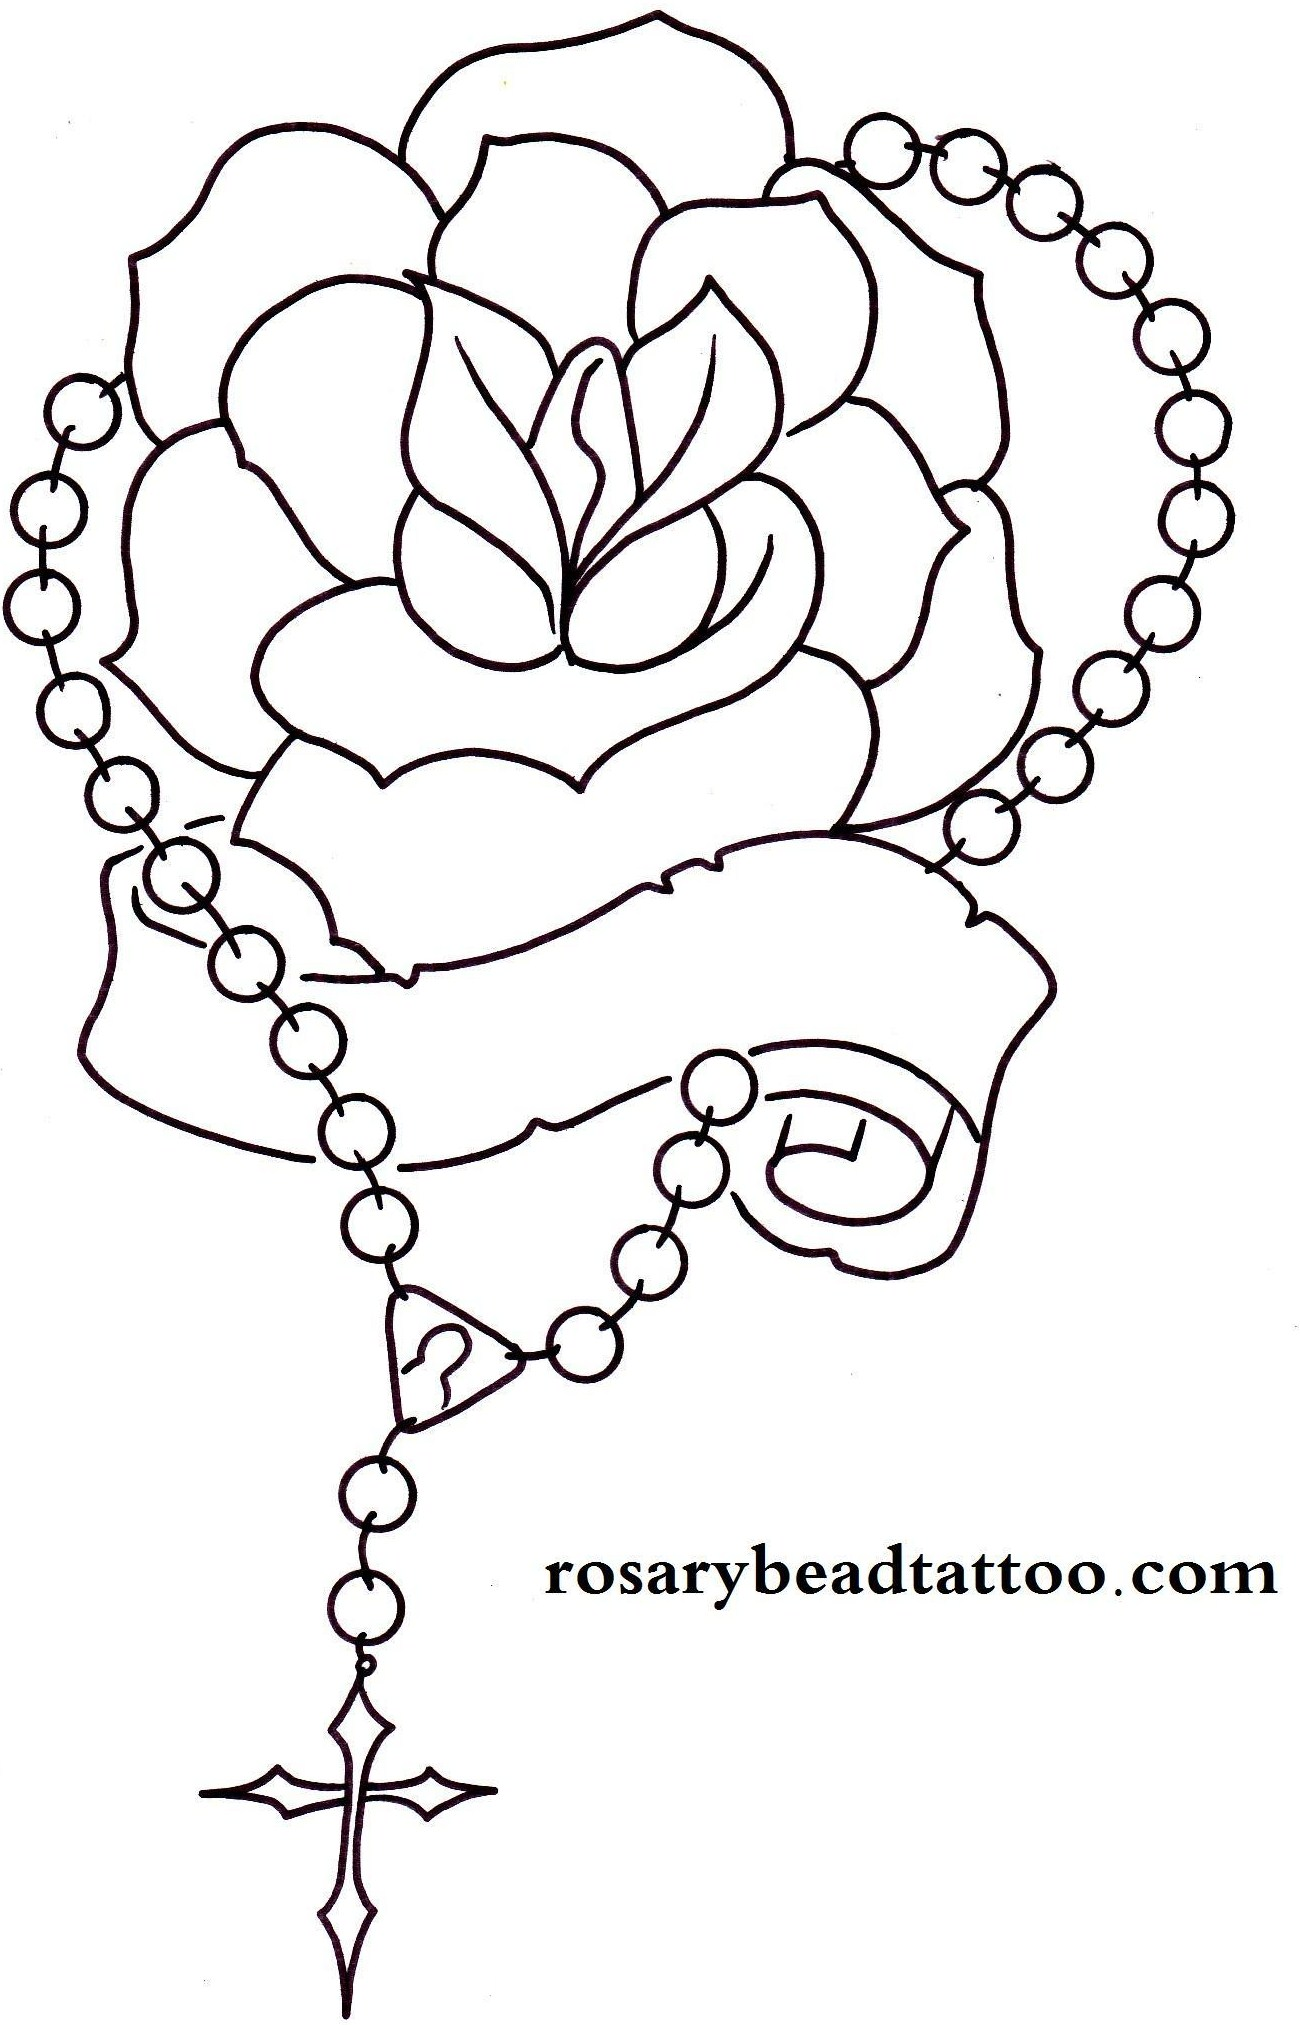 1300x2025 Praying Hands With Rosary Beads Tattoo Cross Rosary Tattoos